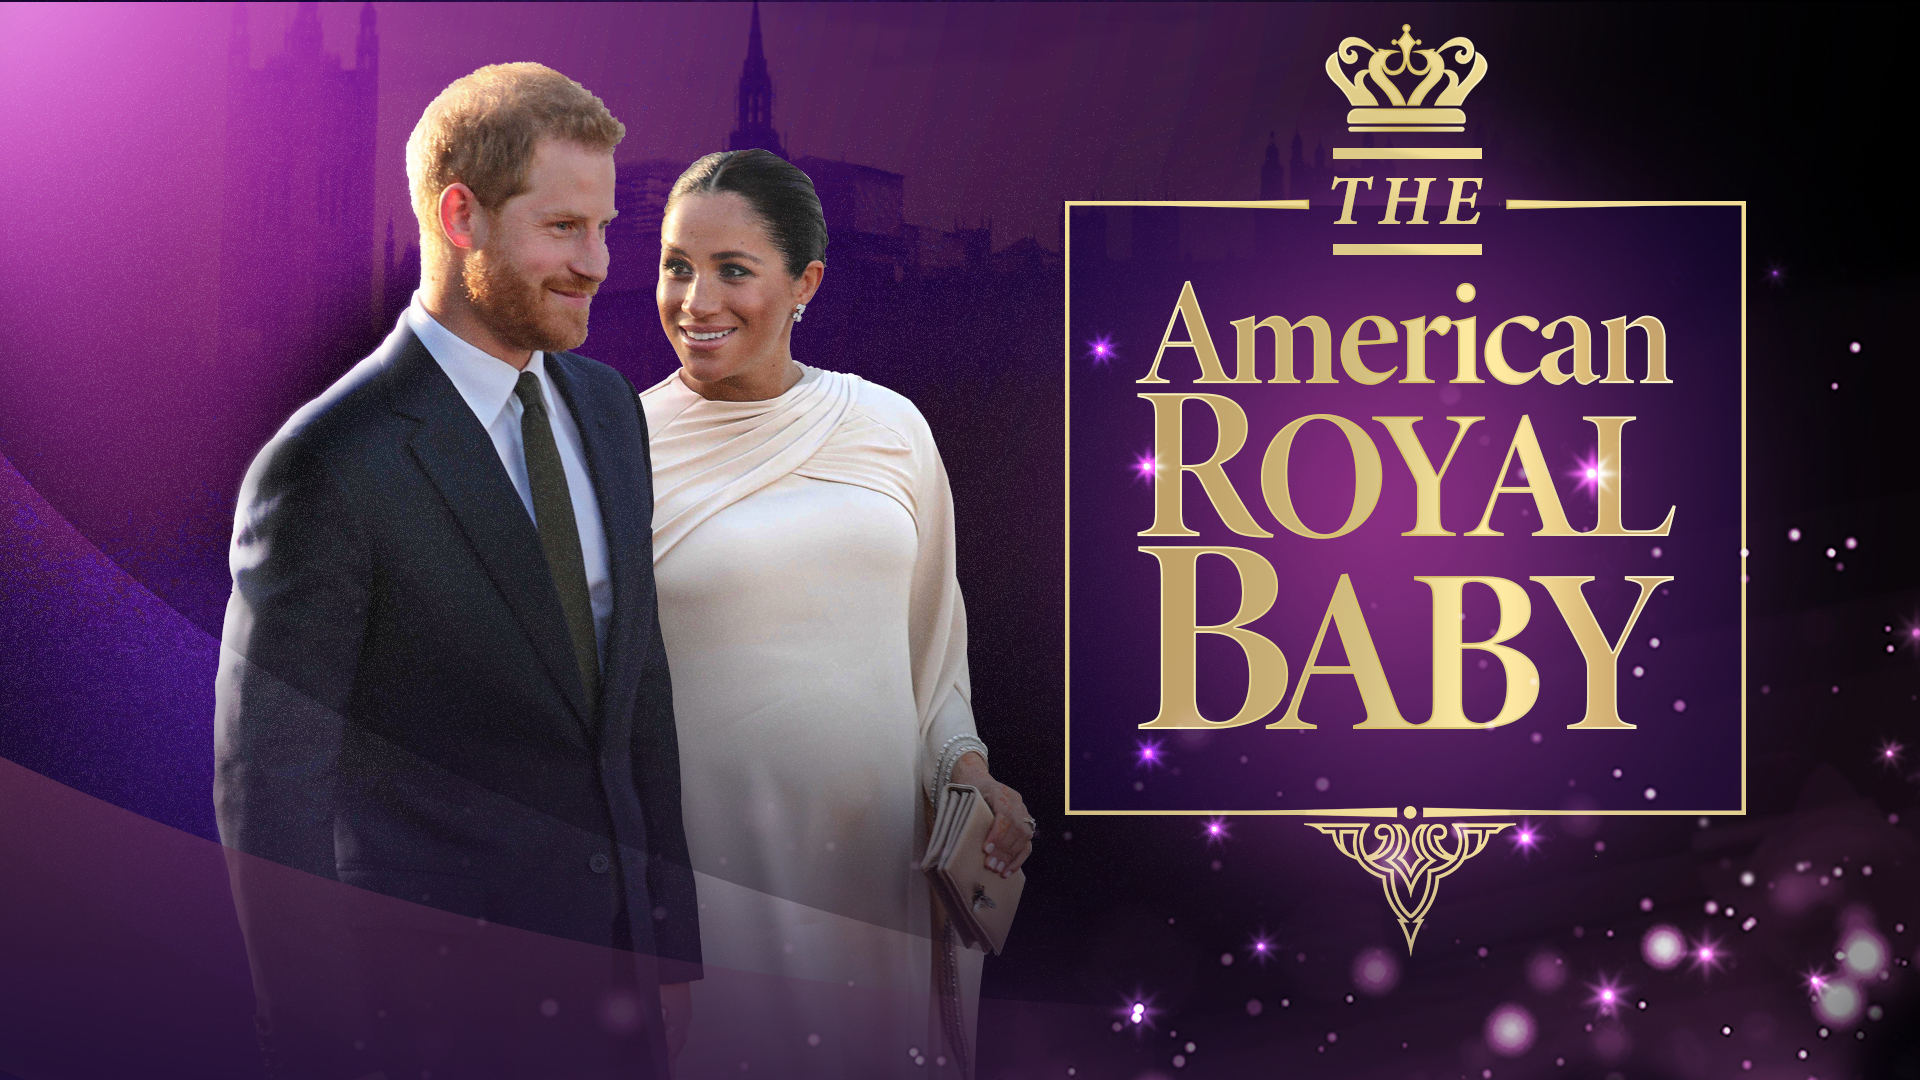 The American Royal Baby